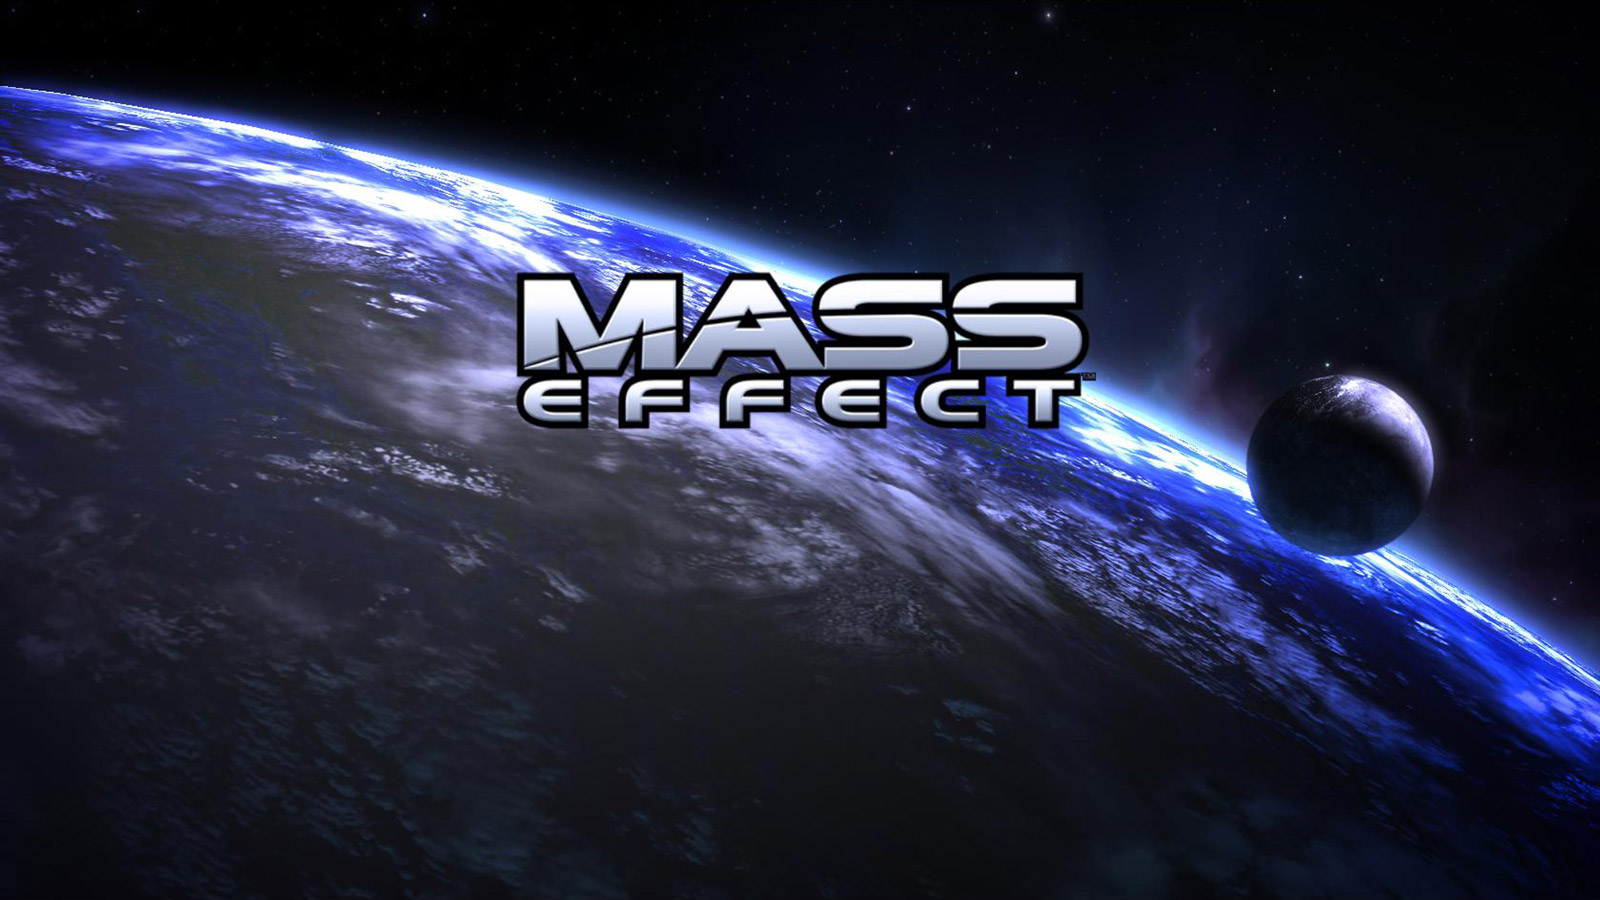 Free Mass Effect Wallpaper in 1600x900